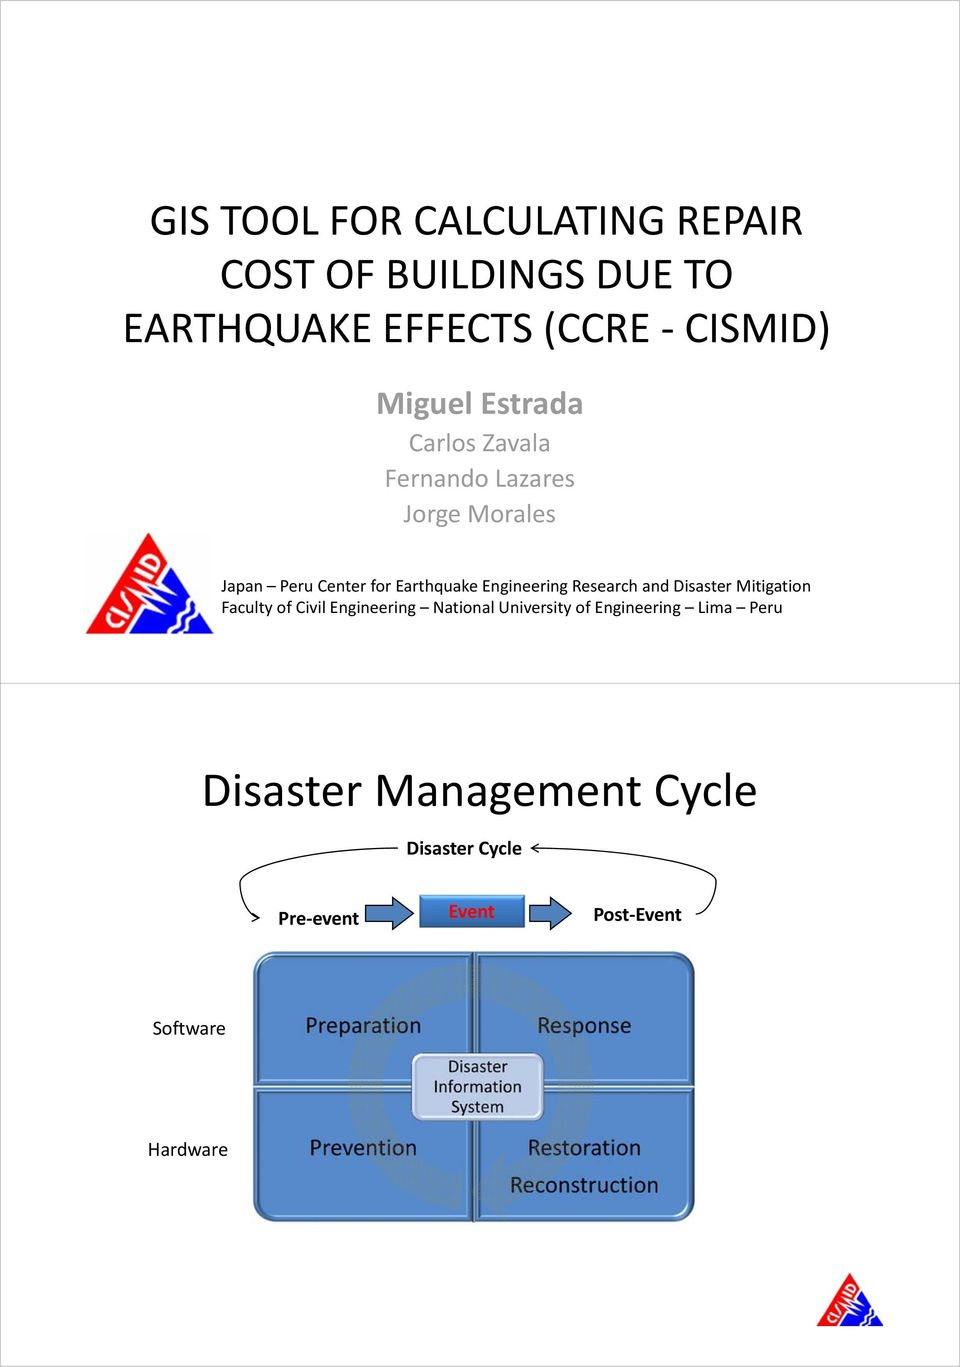 Engineering Research and Disaster Mitigation Faculty of Civil Engineering National University of